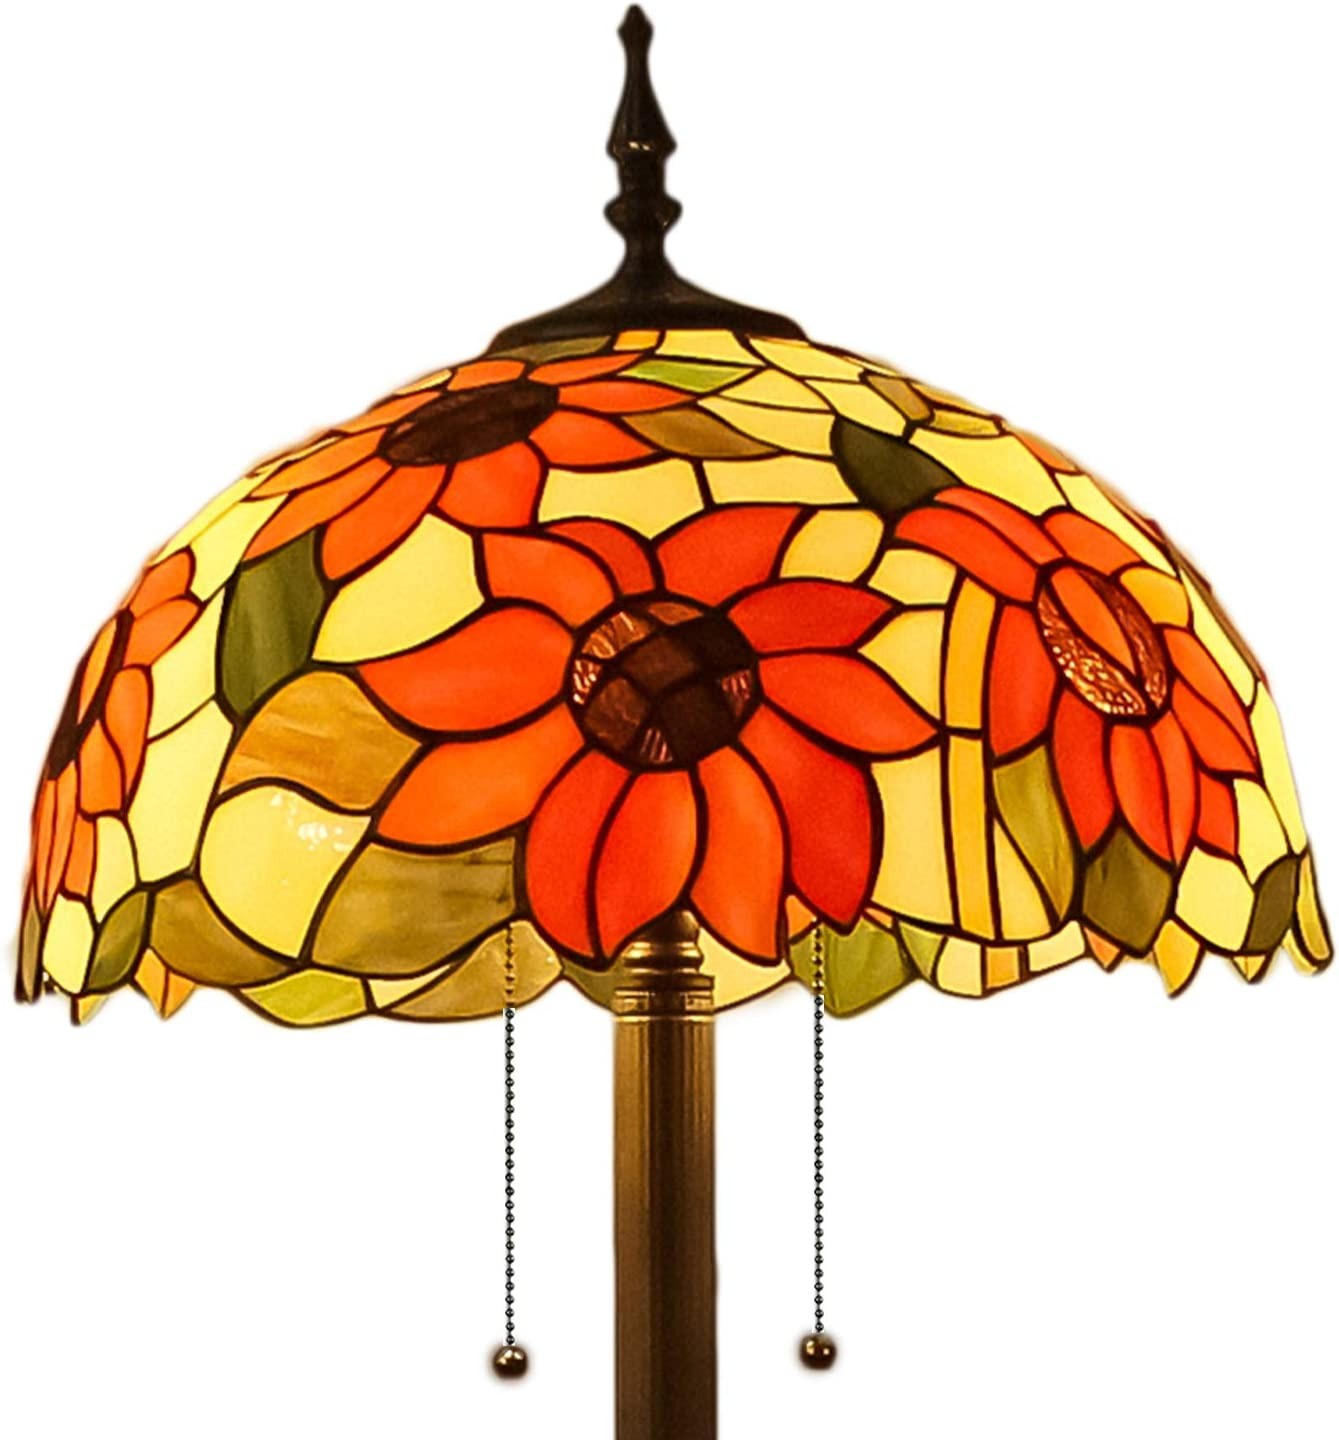 Mural Times Lighting Limited time for free shipping Tiffany Lamp Sunflower W16H66 Handmade New products, world's highest quality popular! Inch